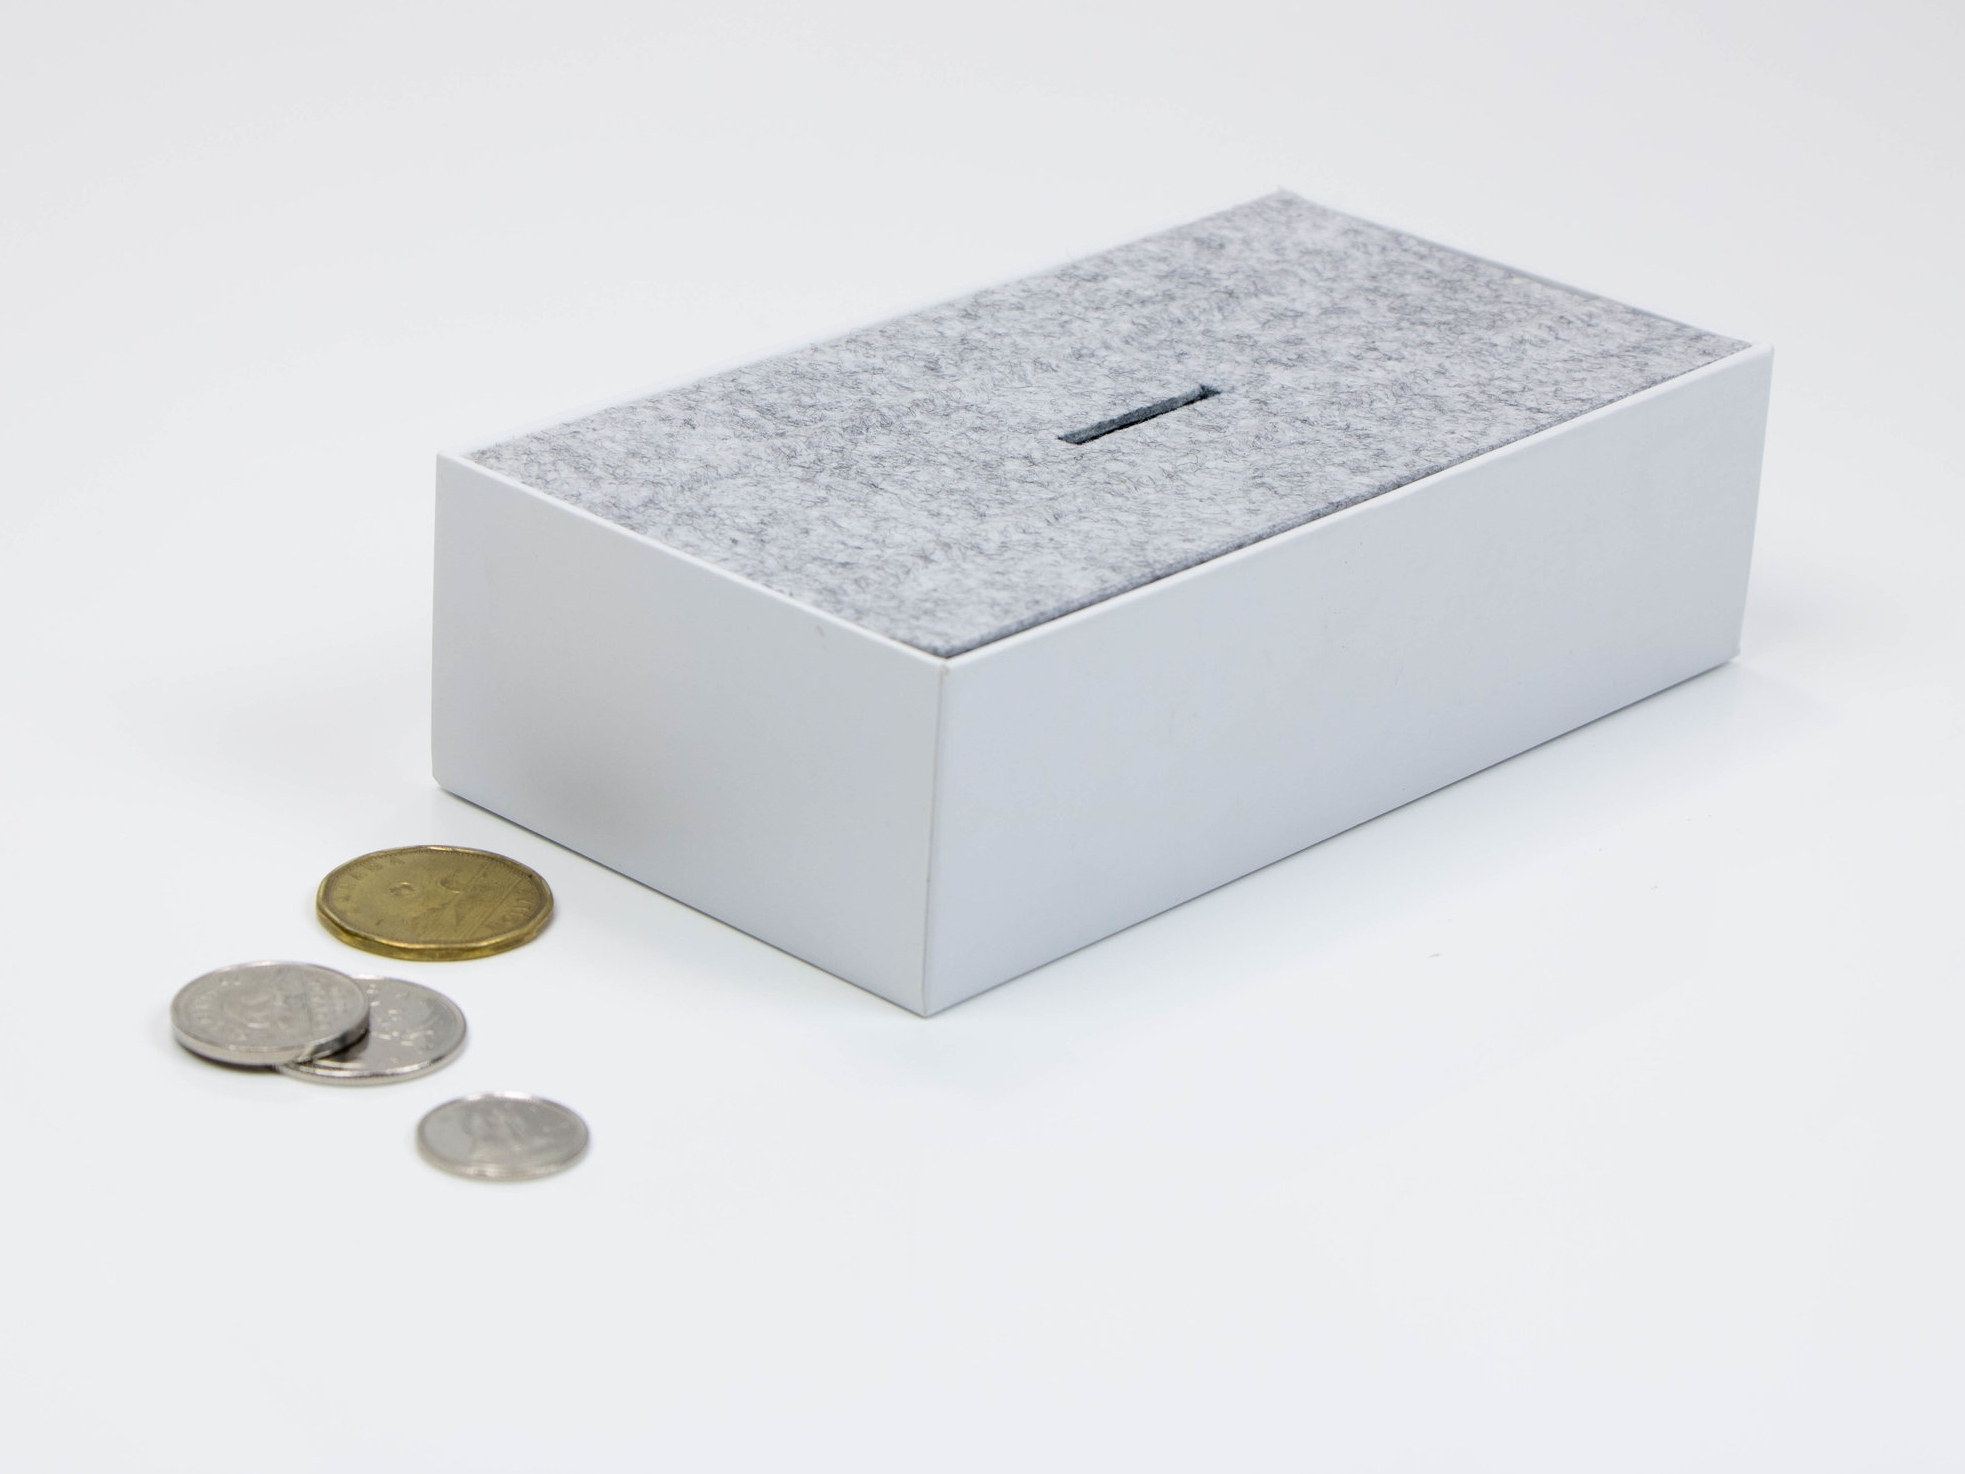 Make a bank with an iPhone box